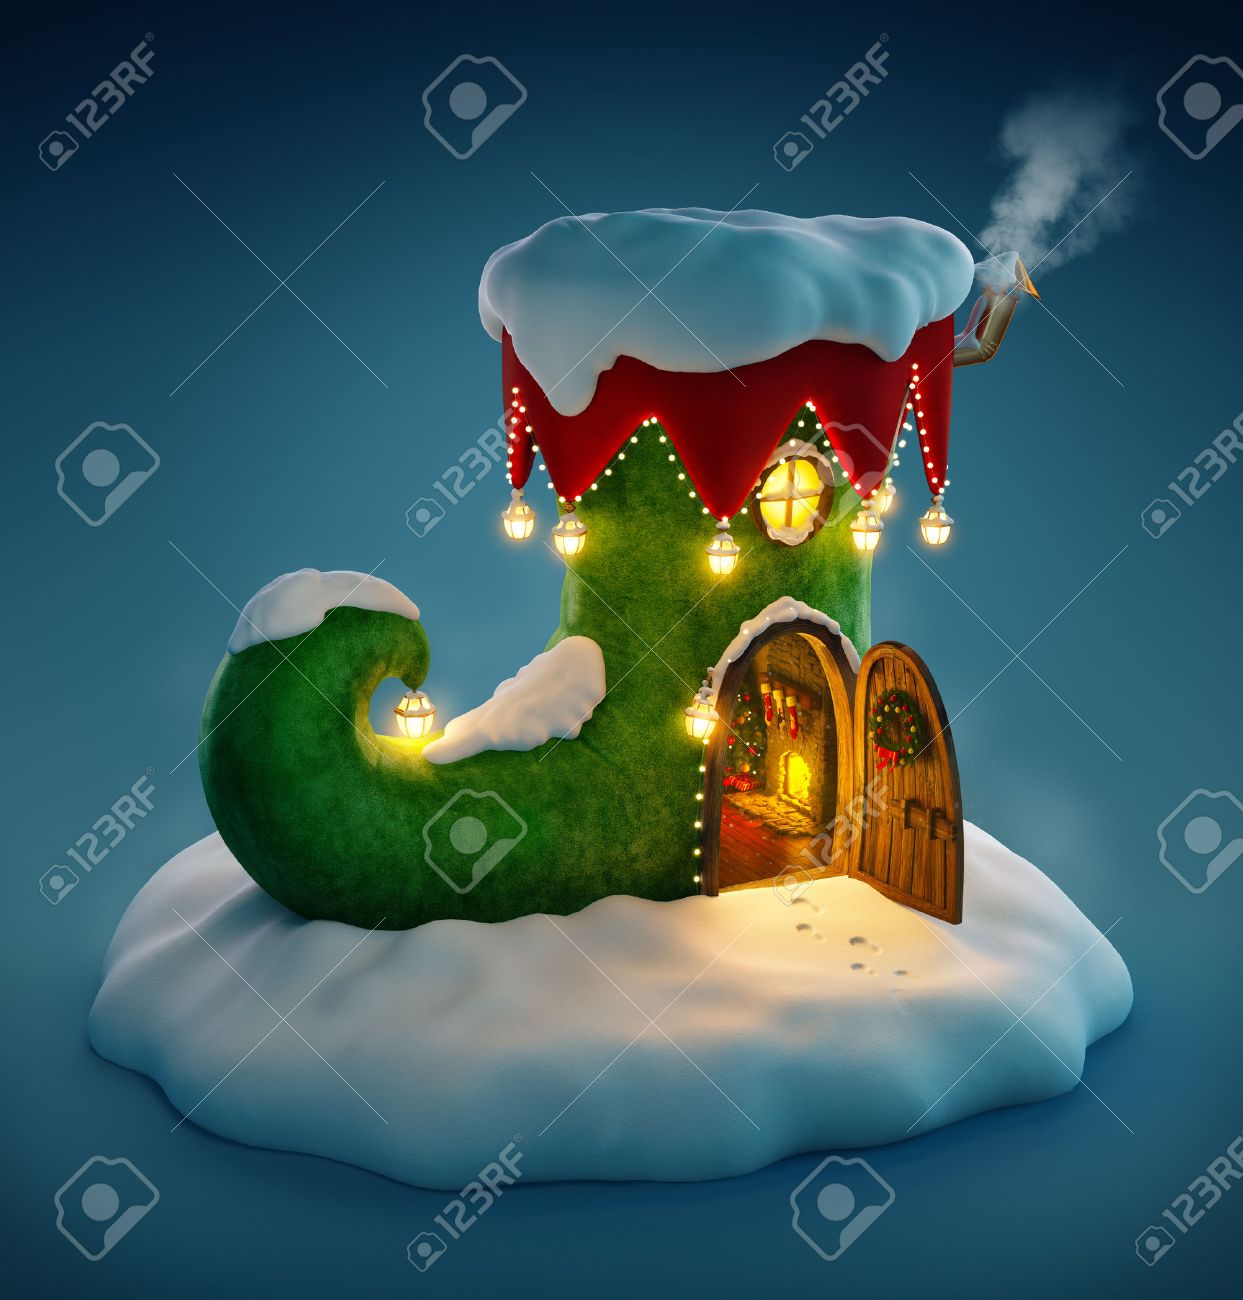 Amazing fairy house decorated at christmas in shape of elfs shoe with opened door and fireplace inside. Unusual christmas illustration. Stock Illustration - 46807381